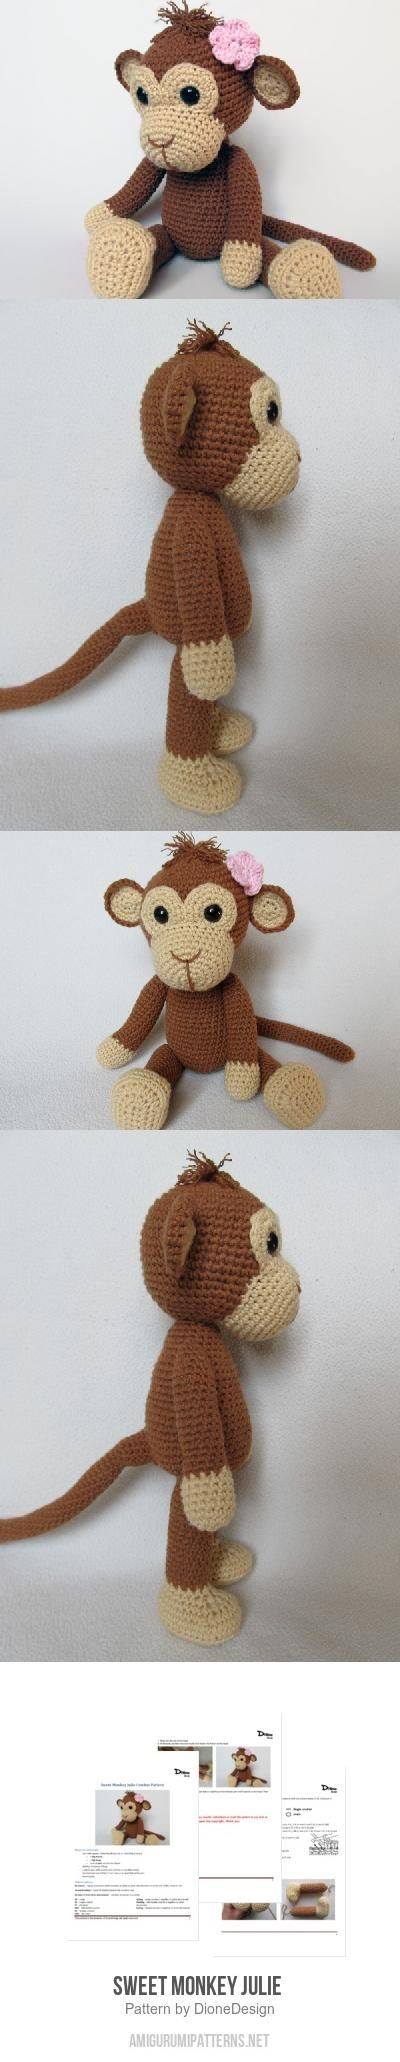 Sweet Monkey Julie  amigurumi pattern